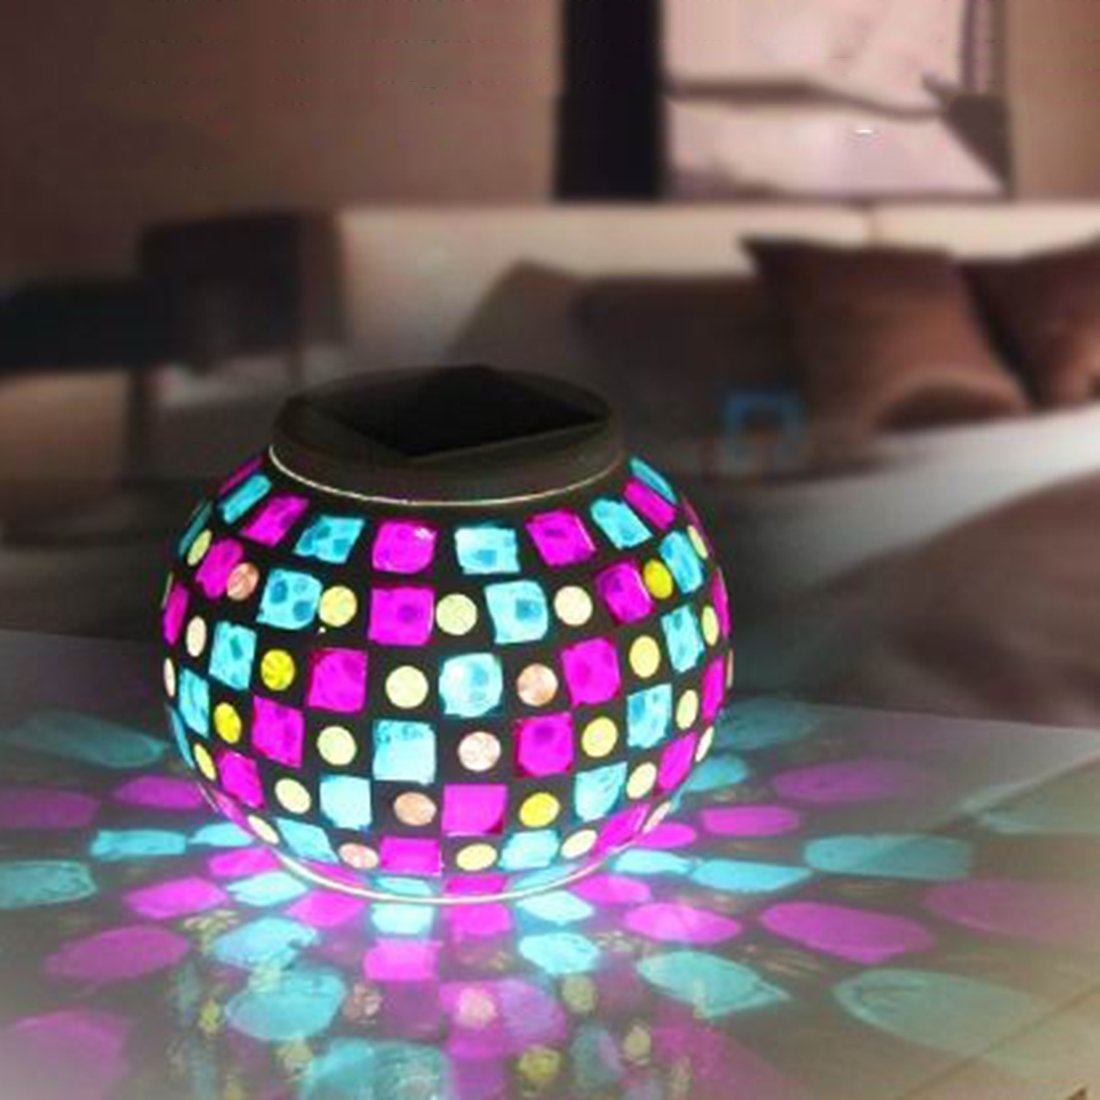 mosaic table garden find line bella green outdoor accent get quotations solar lamp tmore glass ball lights led color changing unique coffee tables and end small half beach floor